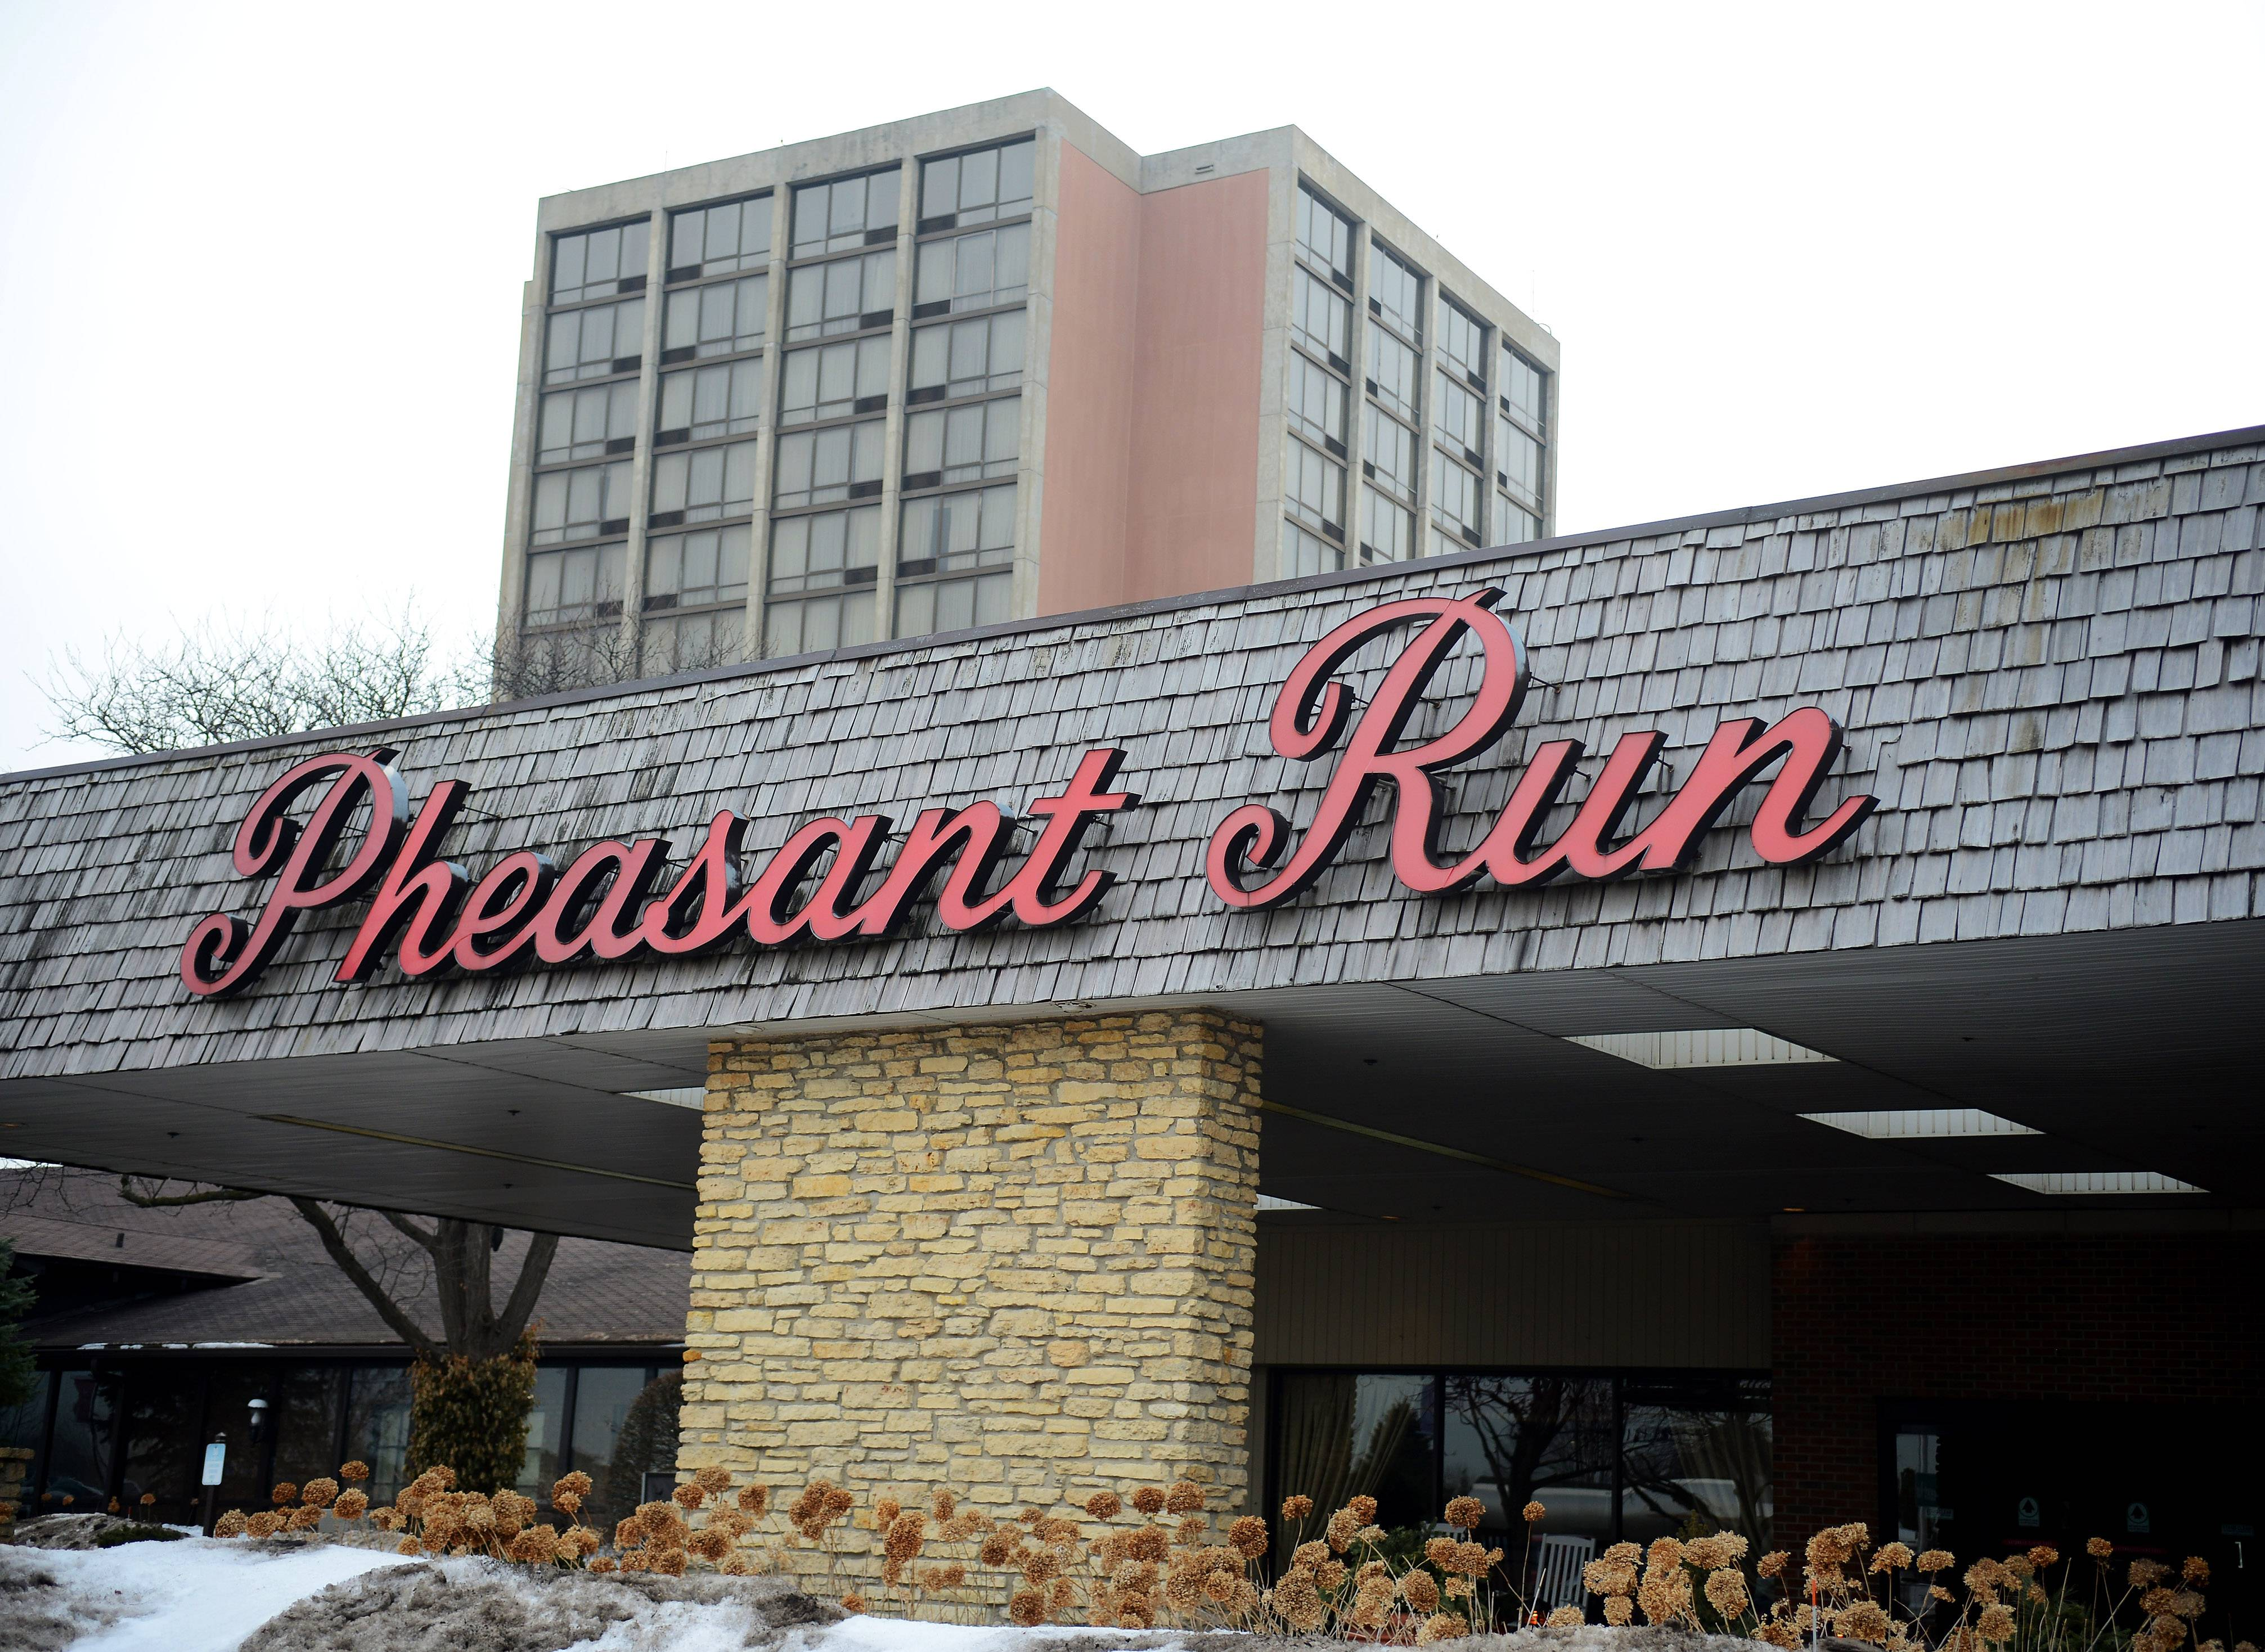 Pheasant Run Resort in St. Charles was purchased Tuesday by Saint Charles Resort, LLC.